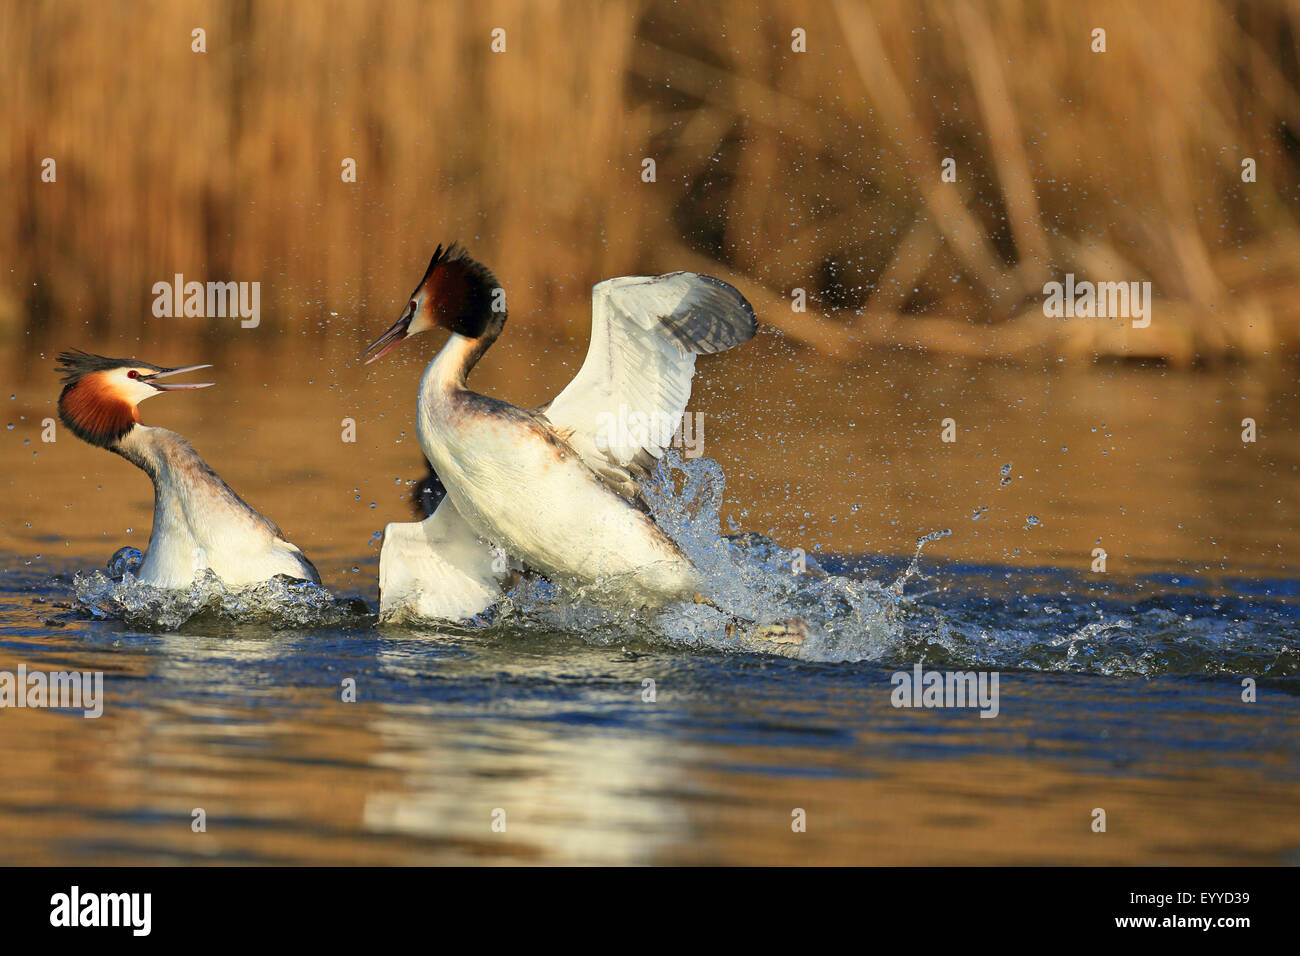 great crested grebe (Podiceps cristatus), territorial fight of two males, Netherlands, Frisia - Stock Image